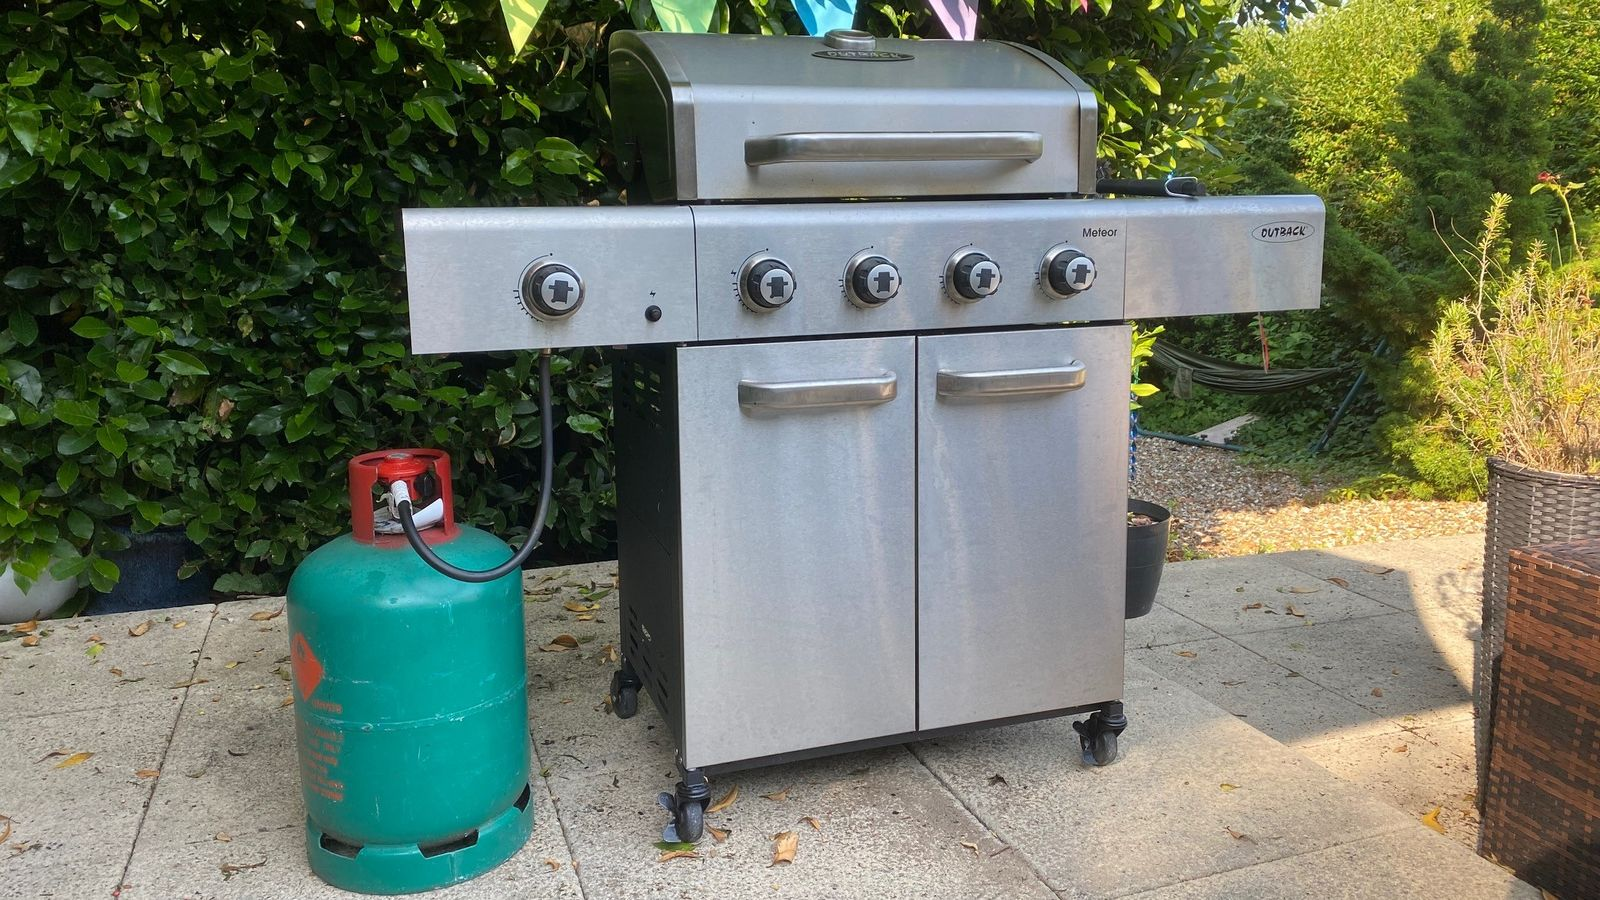 Barbecues threatened as gas cylinder shortage 'exacerbated by pingdemic'